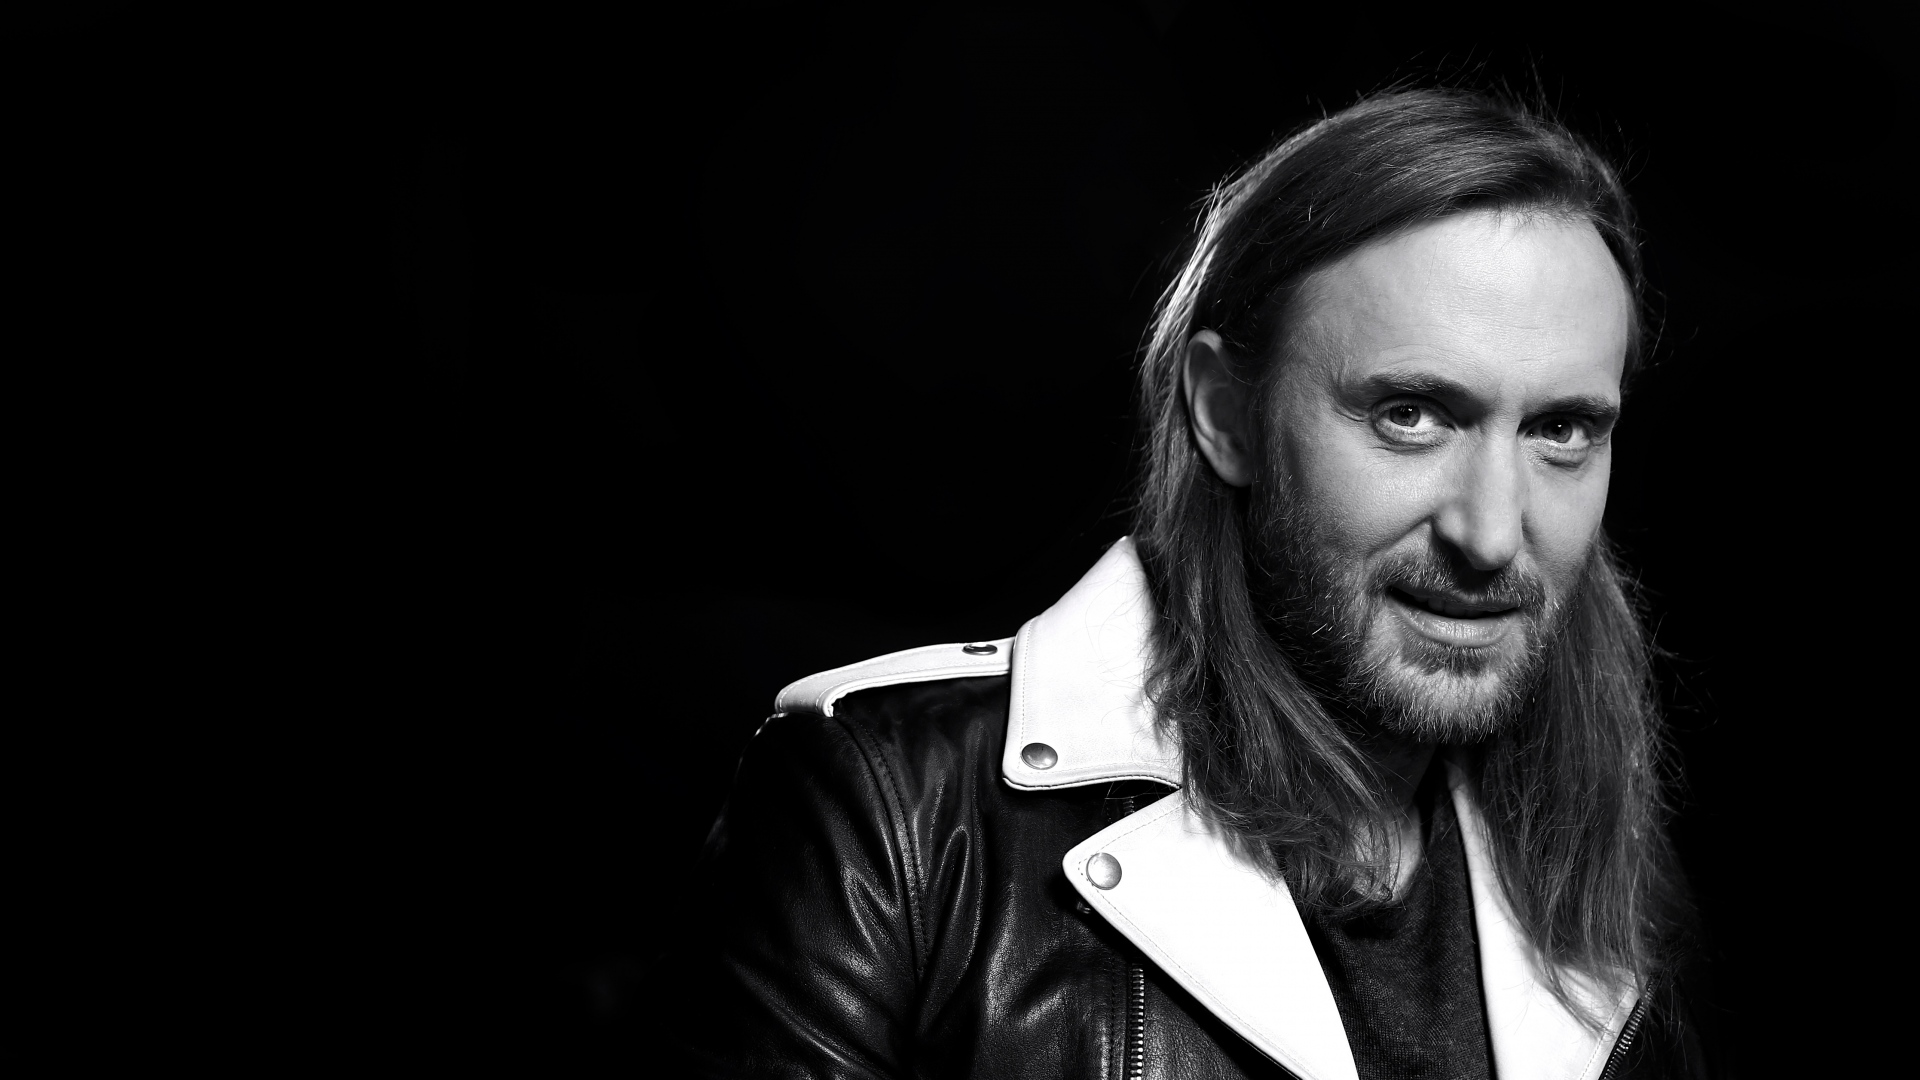 monochrome david guetta wallpaper 59640